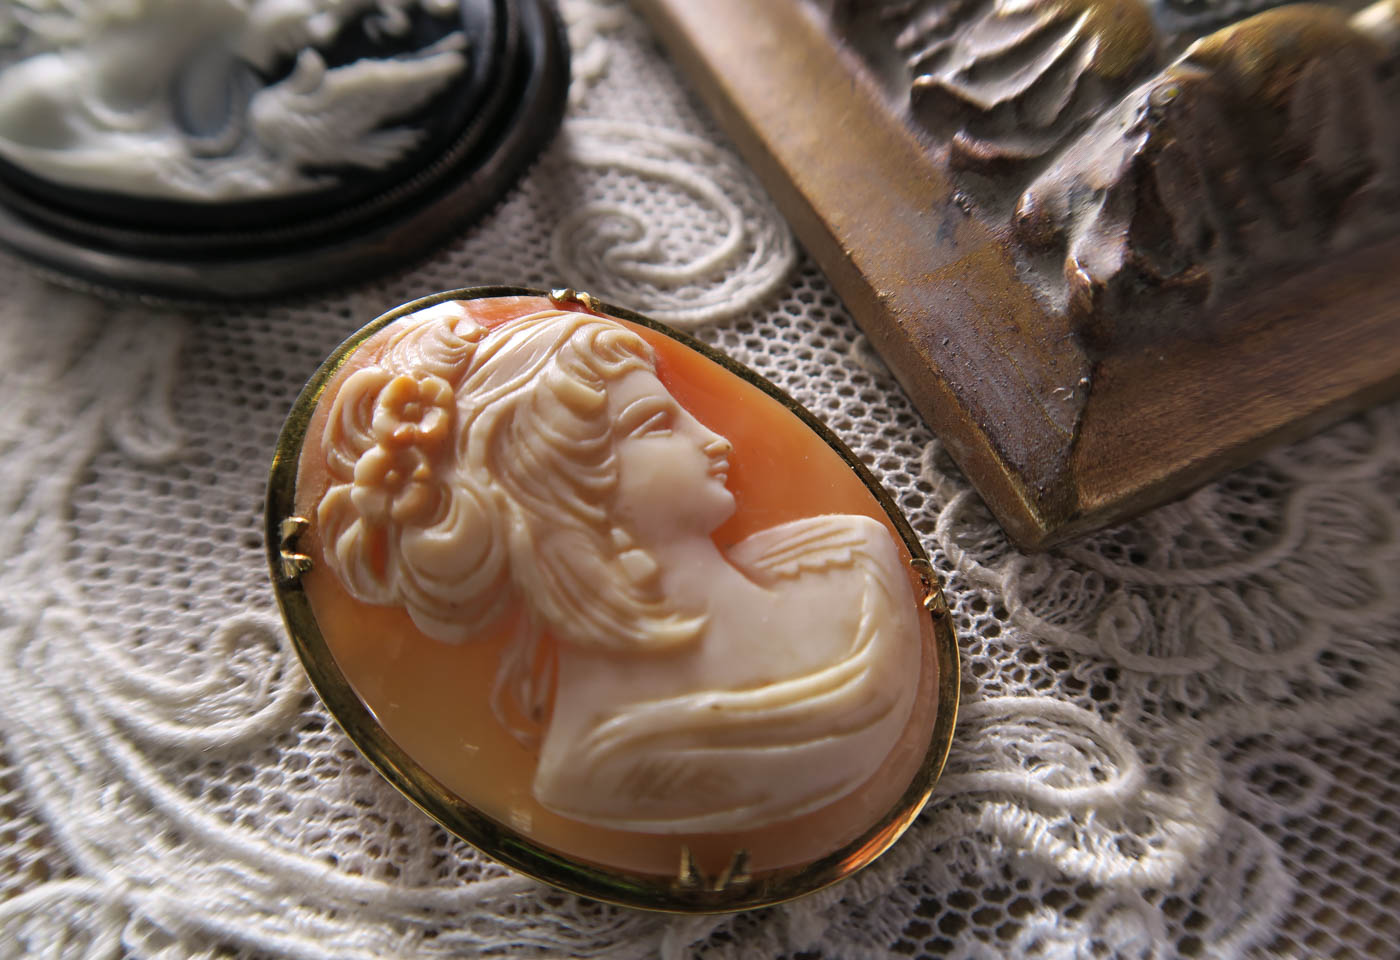 Antique brooch taken with taken with Canon PowerShot SX720 HS compact camera